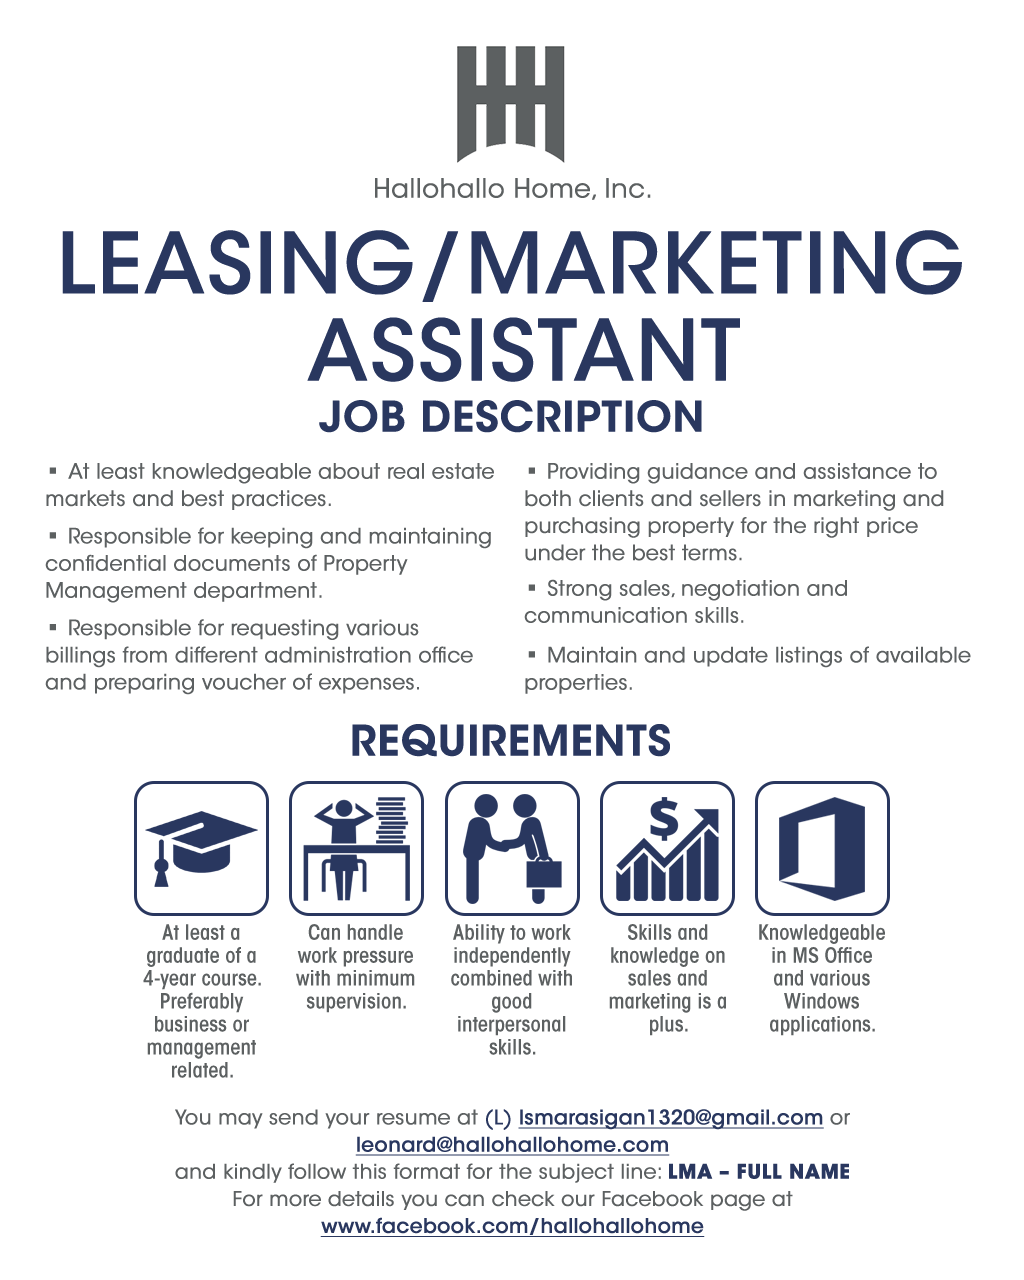 Leasing / Marketing Assistant from Hallohallo Home, Inc.